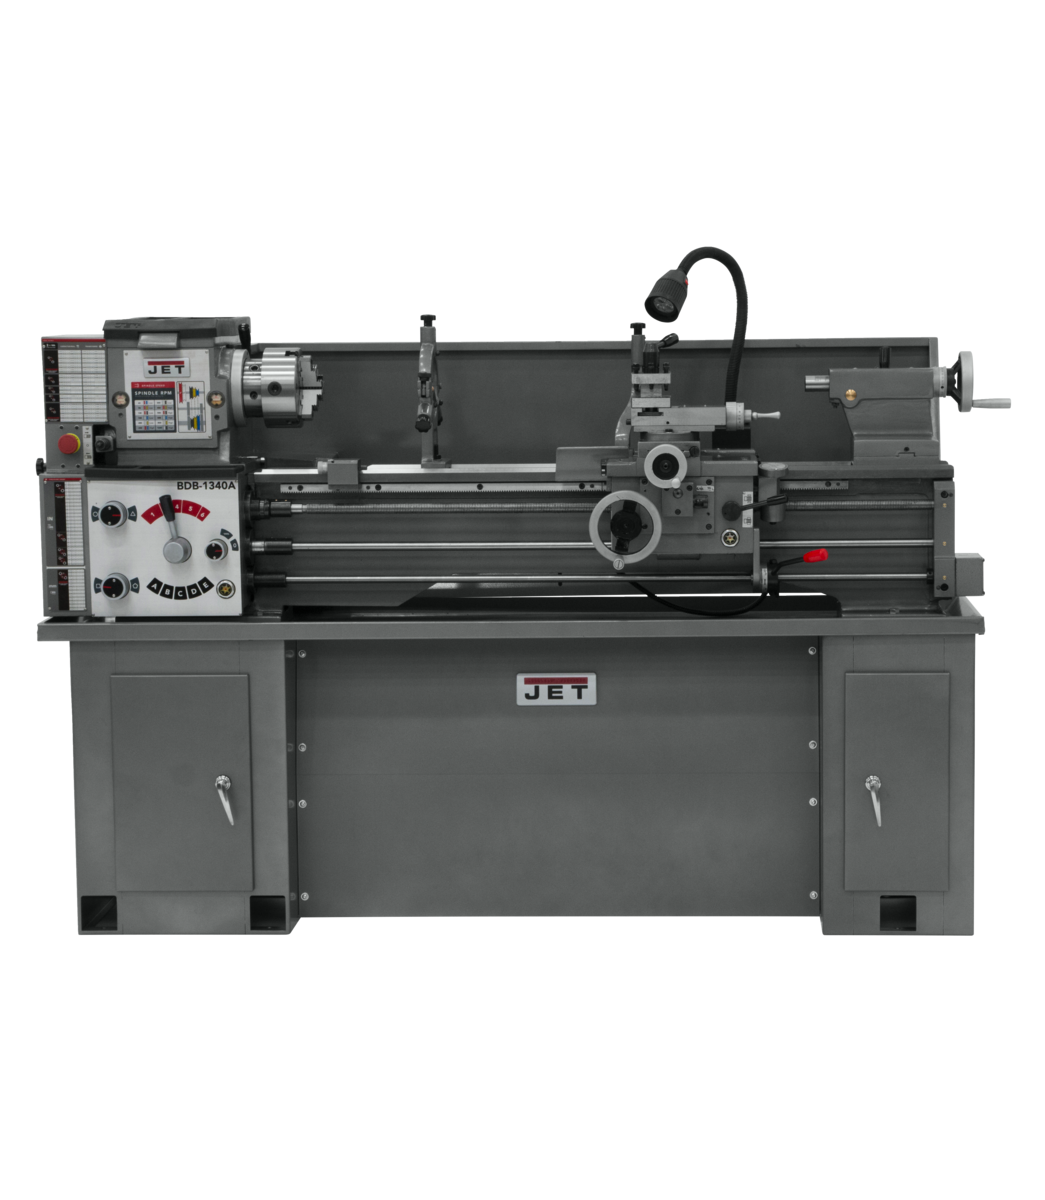 BDB-1340A With CBS-1340A Stand